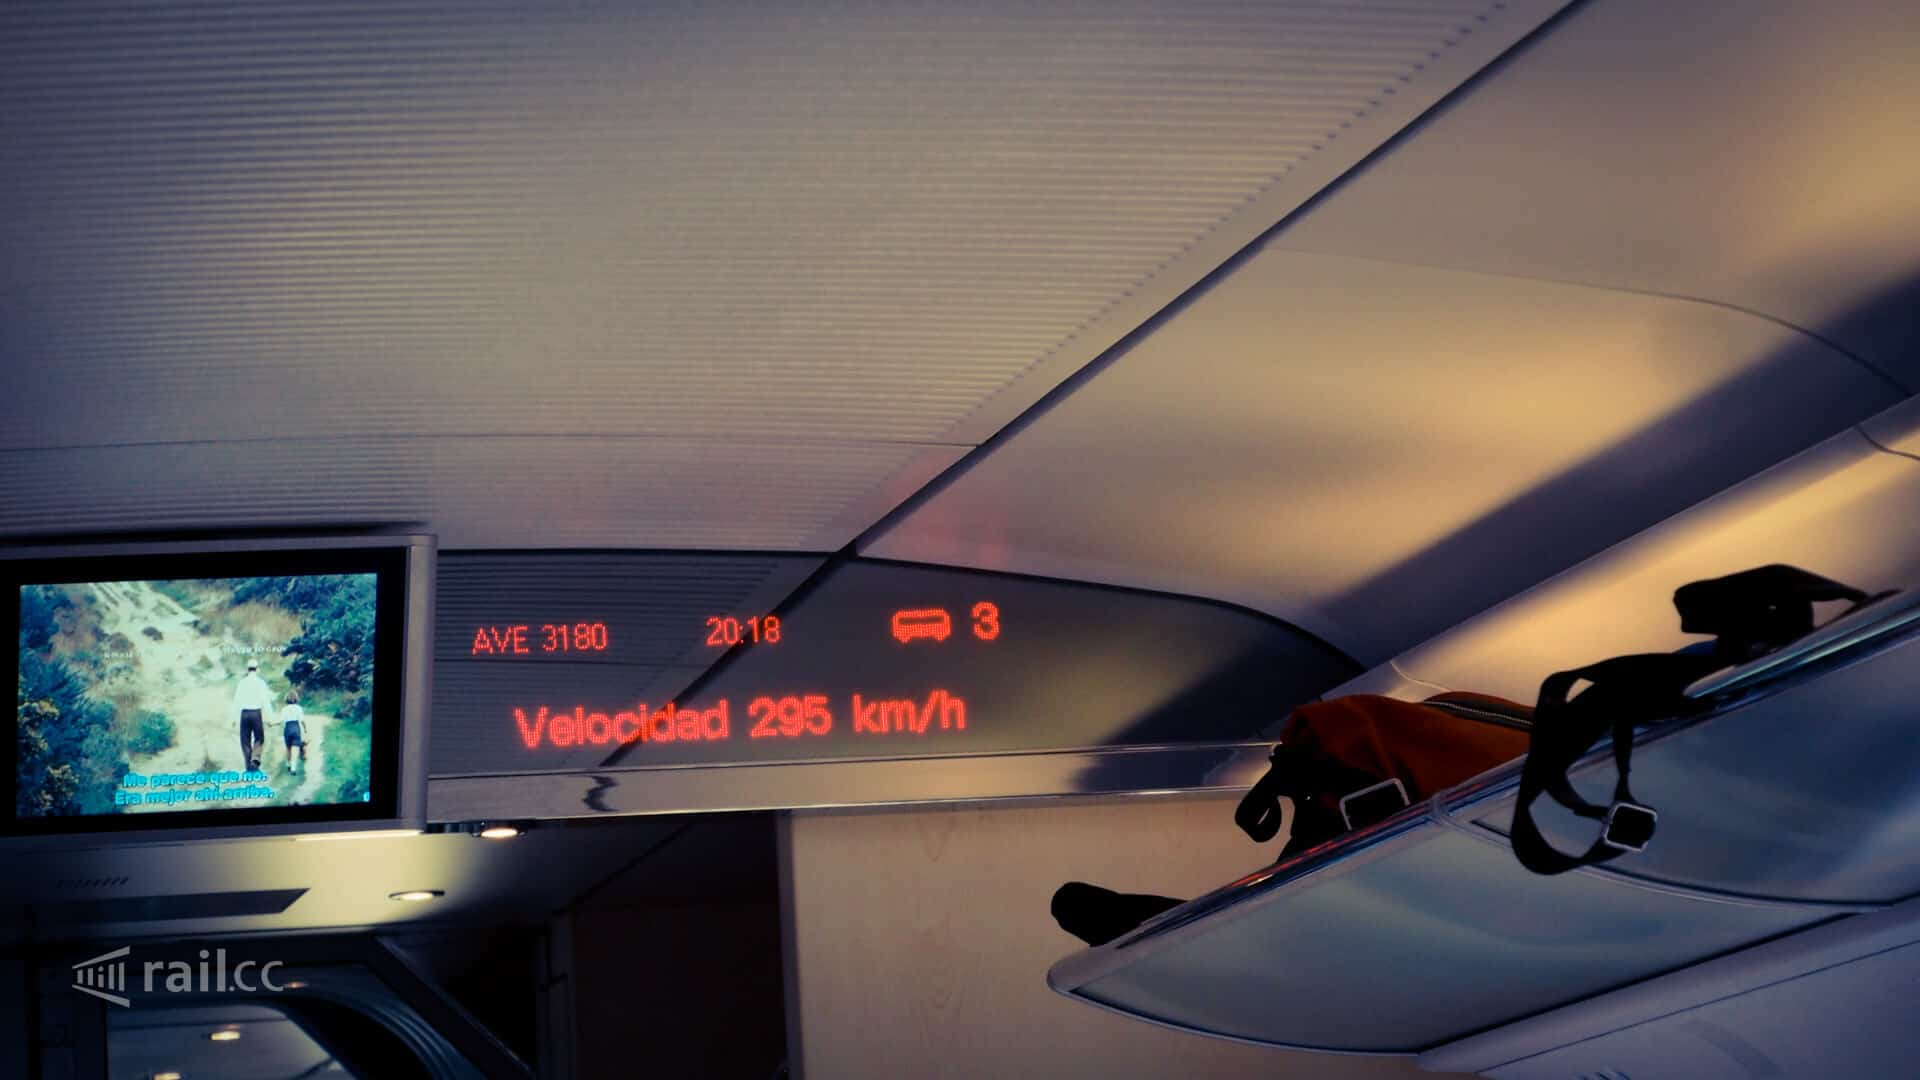 AVE high-speed-train in Spain